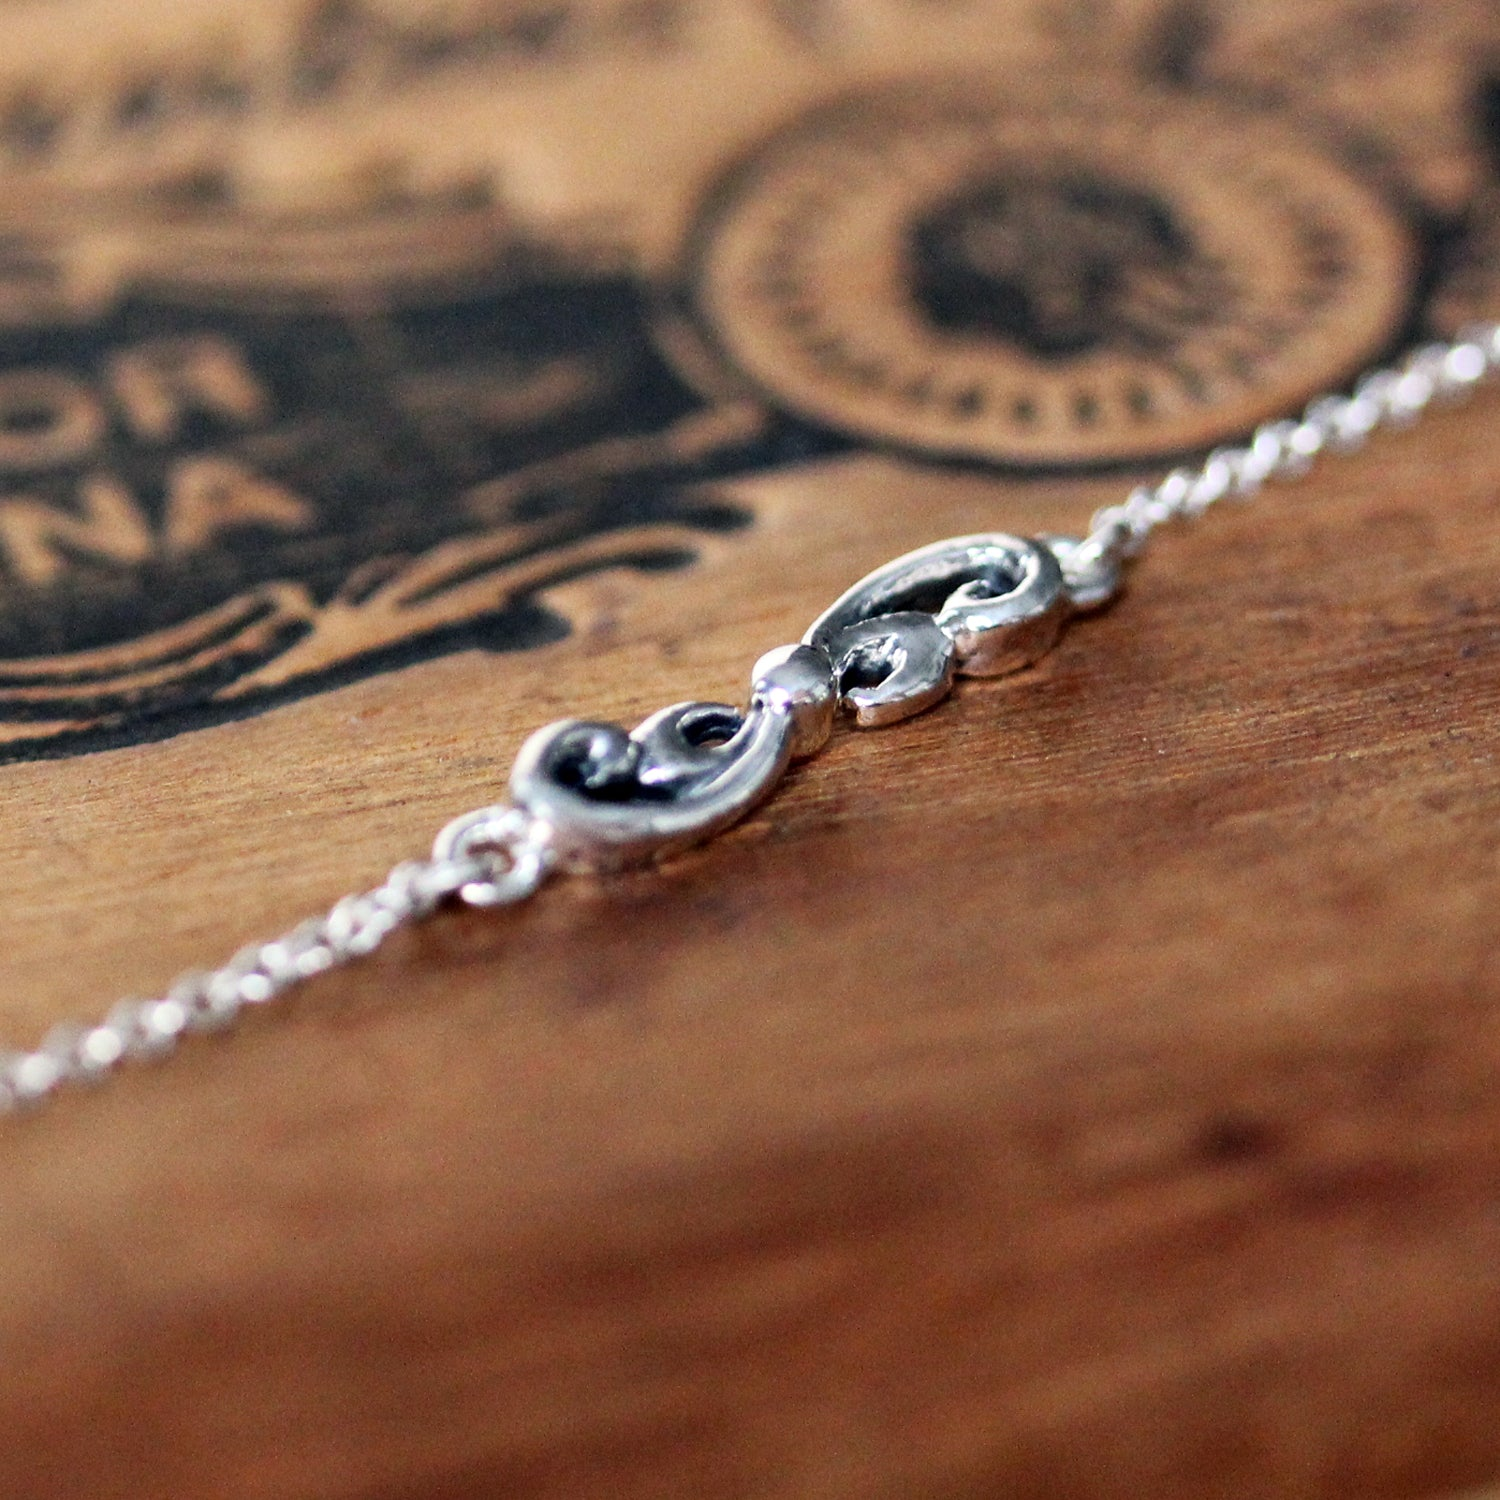 Water Dream Dainty Swirl Bracelet - sterling silver